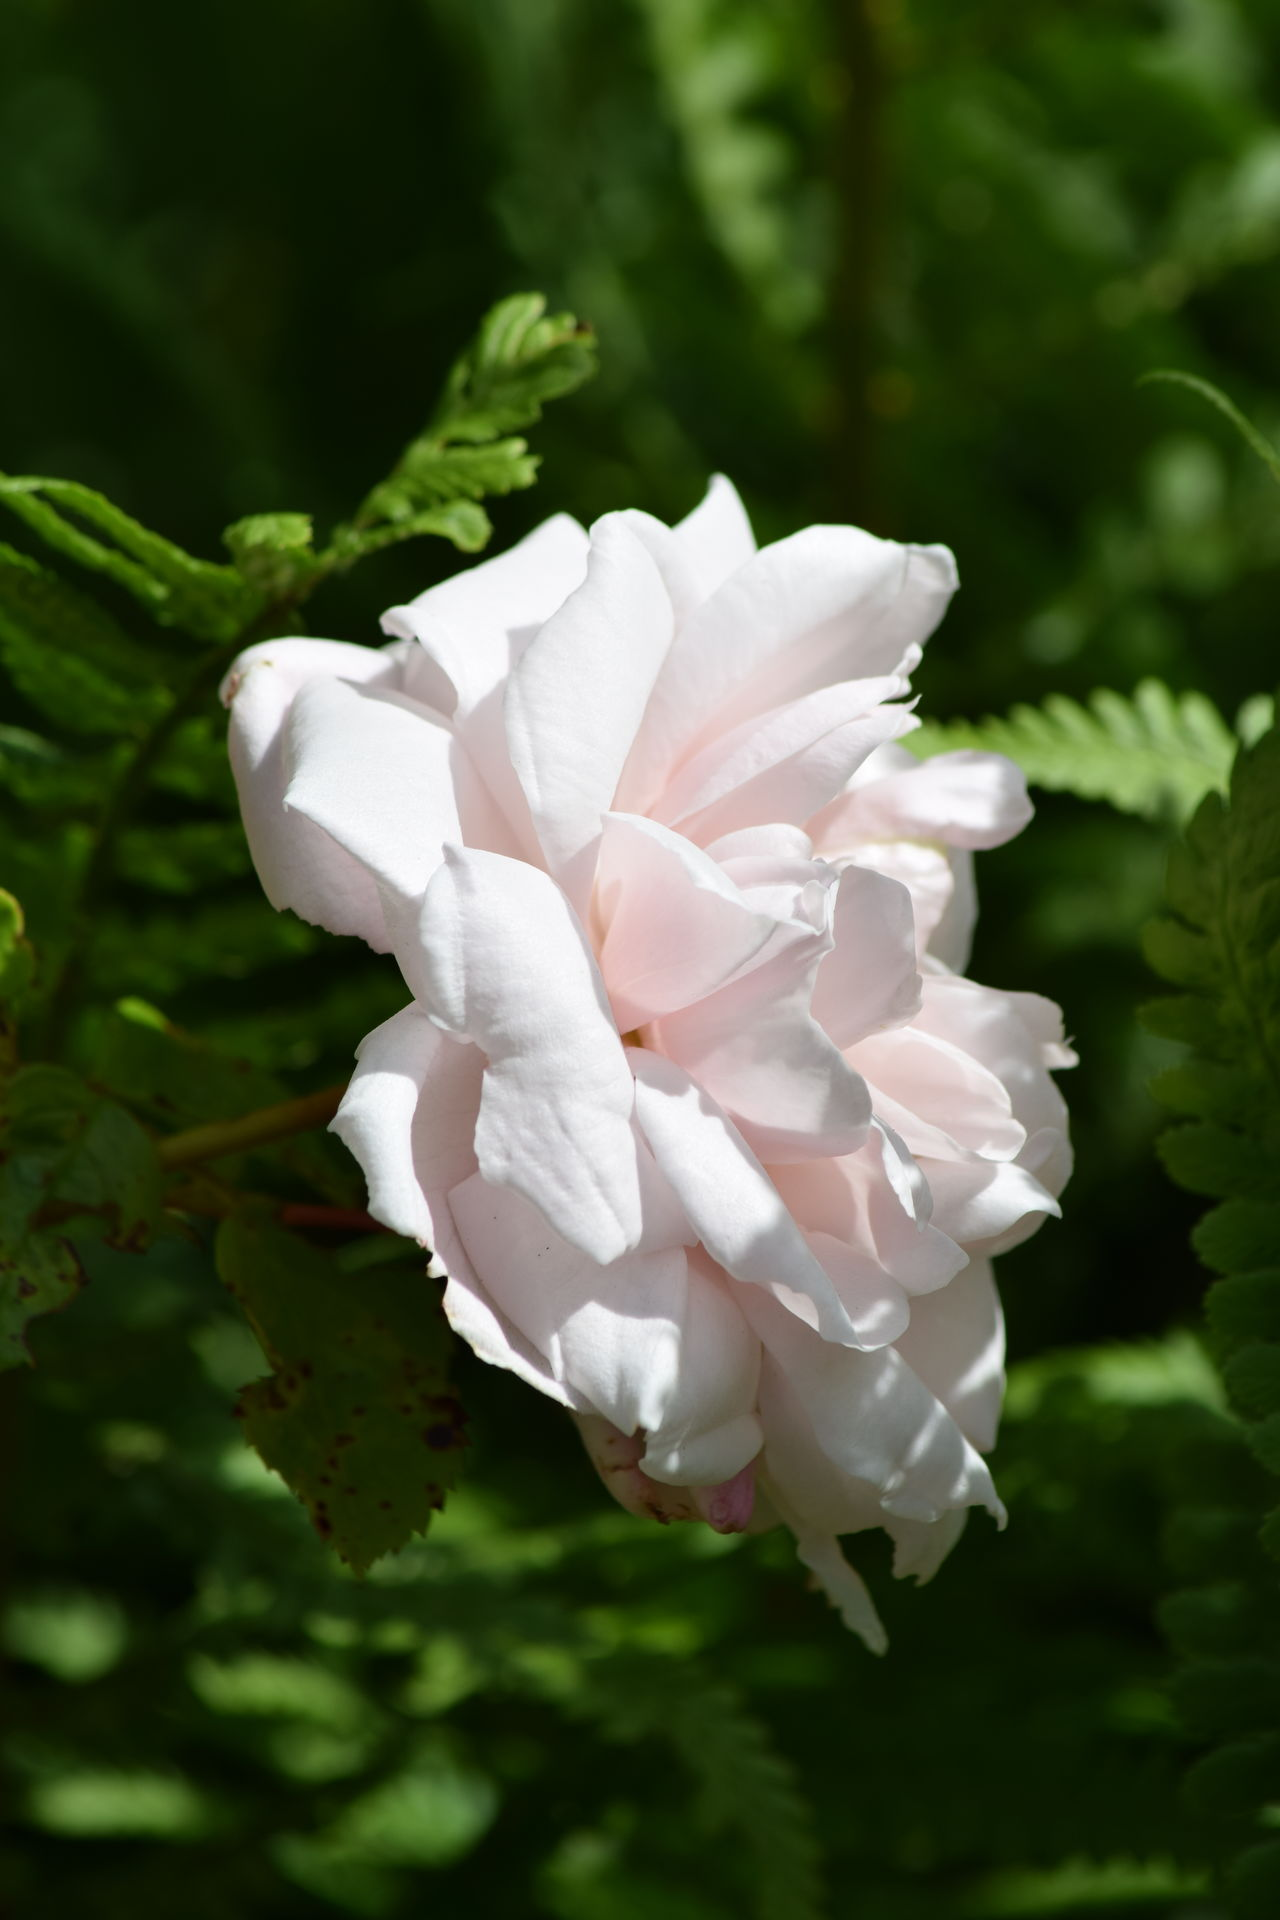 Beauty In Nature Close-up Day Flower Flower Head Fragility Freshness Garden Flowers Greenery Growth Nature No People Outdoors Petal Pink Rose Plant